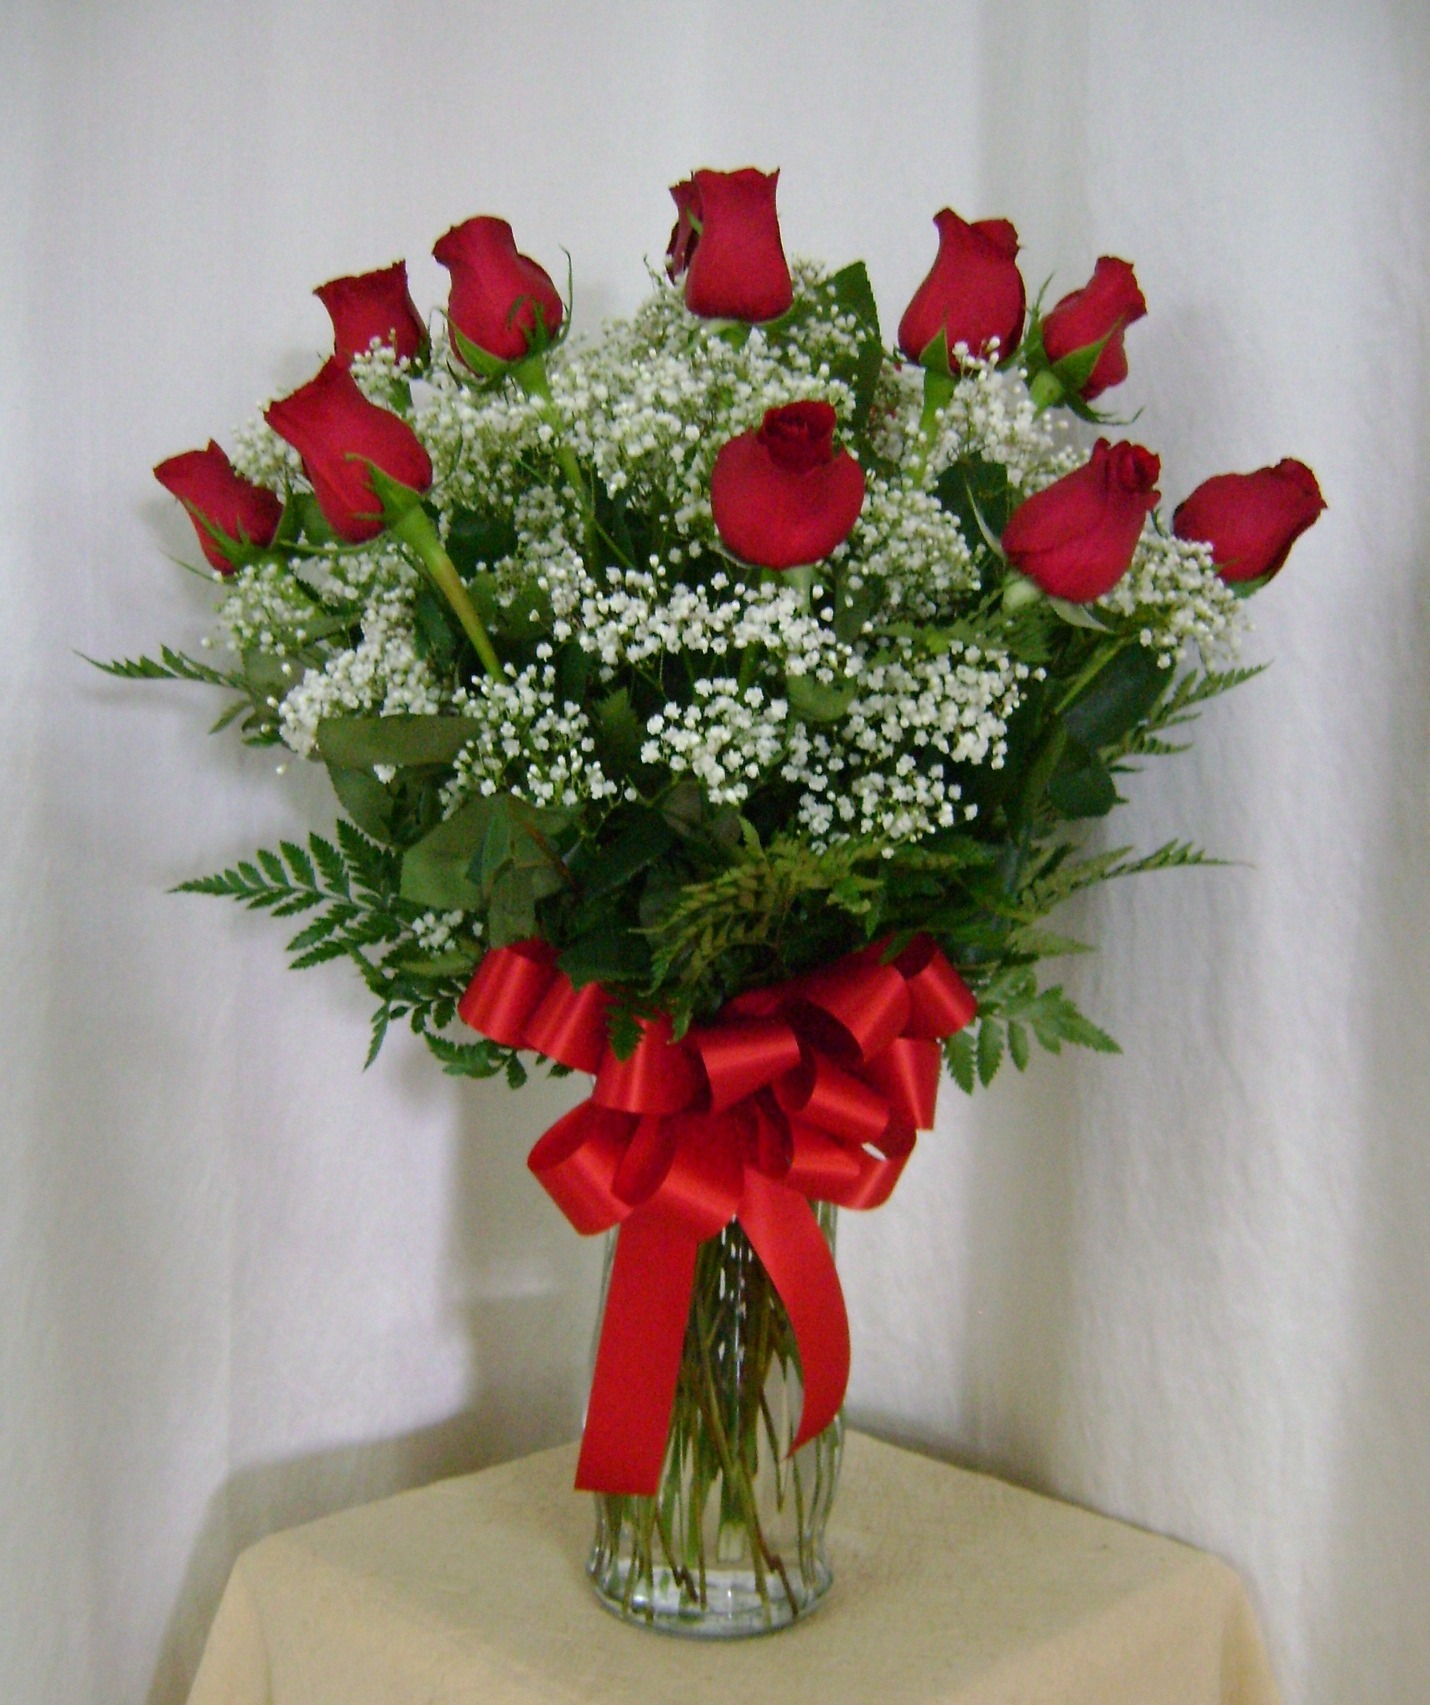 Classic Red Rose Vase Long Stems Flowers Boutique